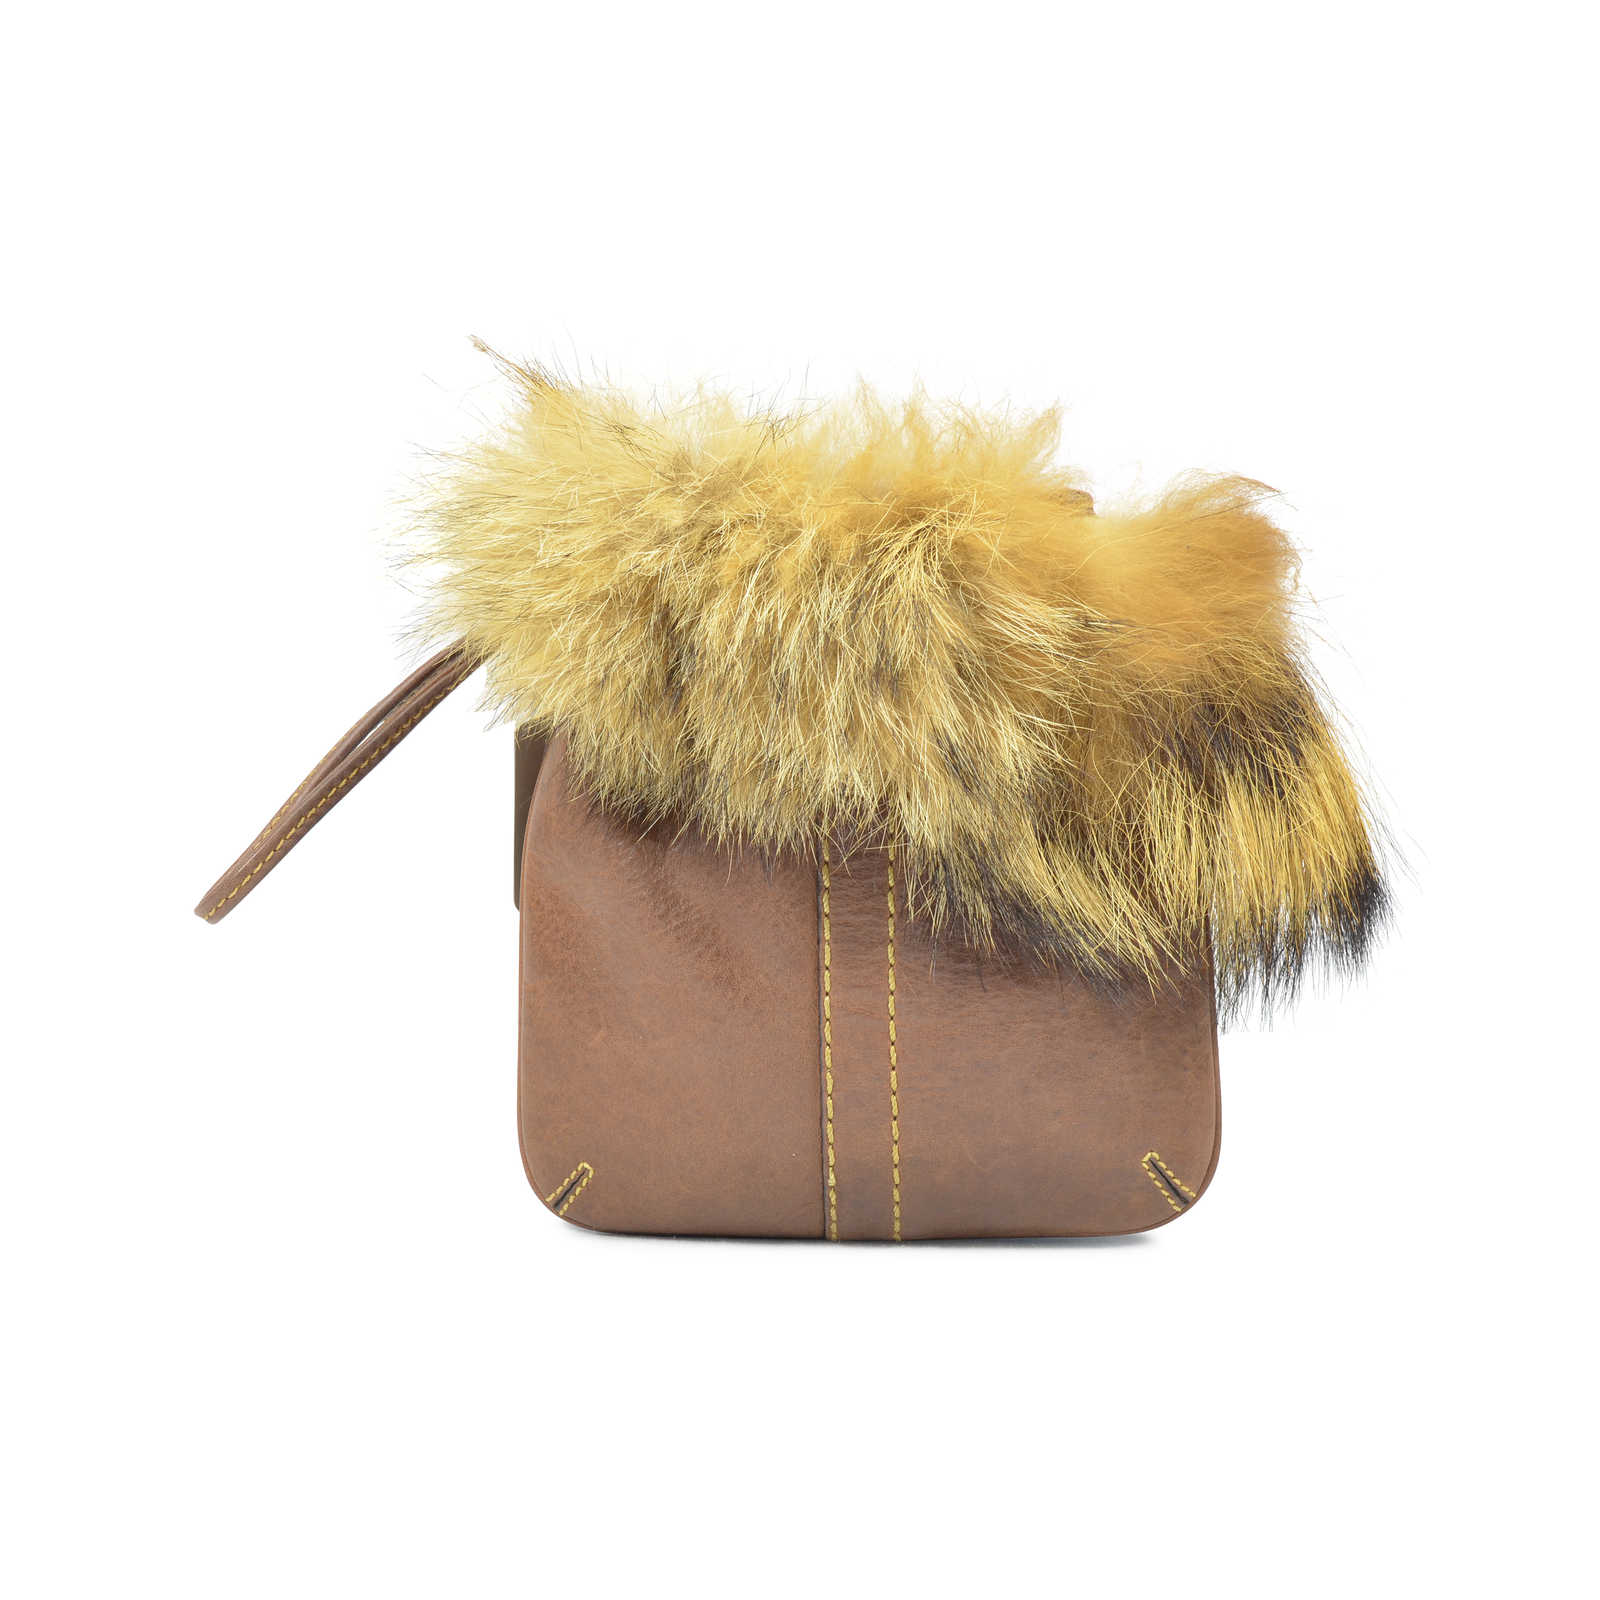 Authentic Pre Owned Coach Fur Trim Pouch Pss 320 00011 The Fifth 1dd9e0128910c